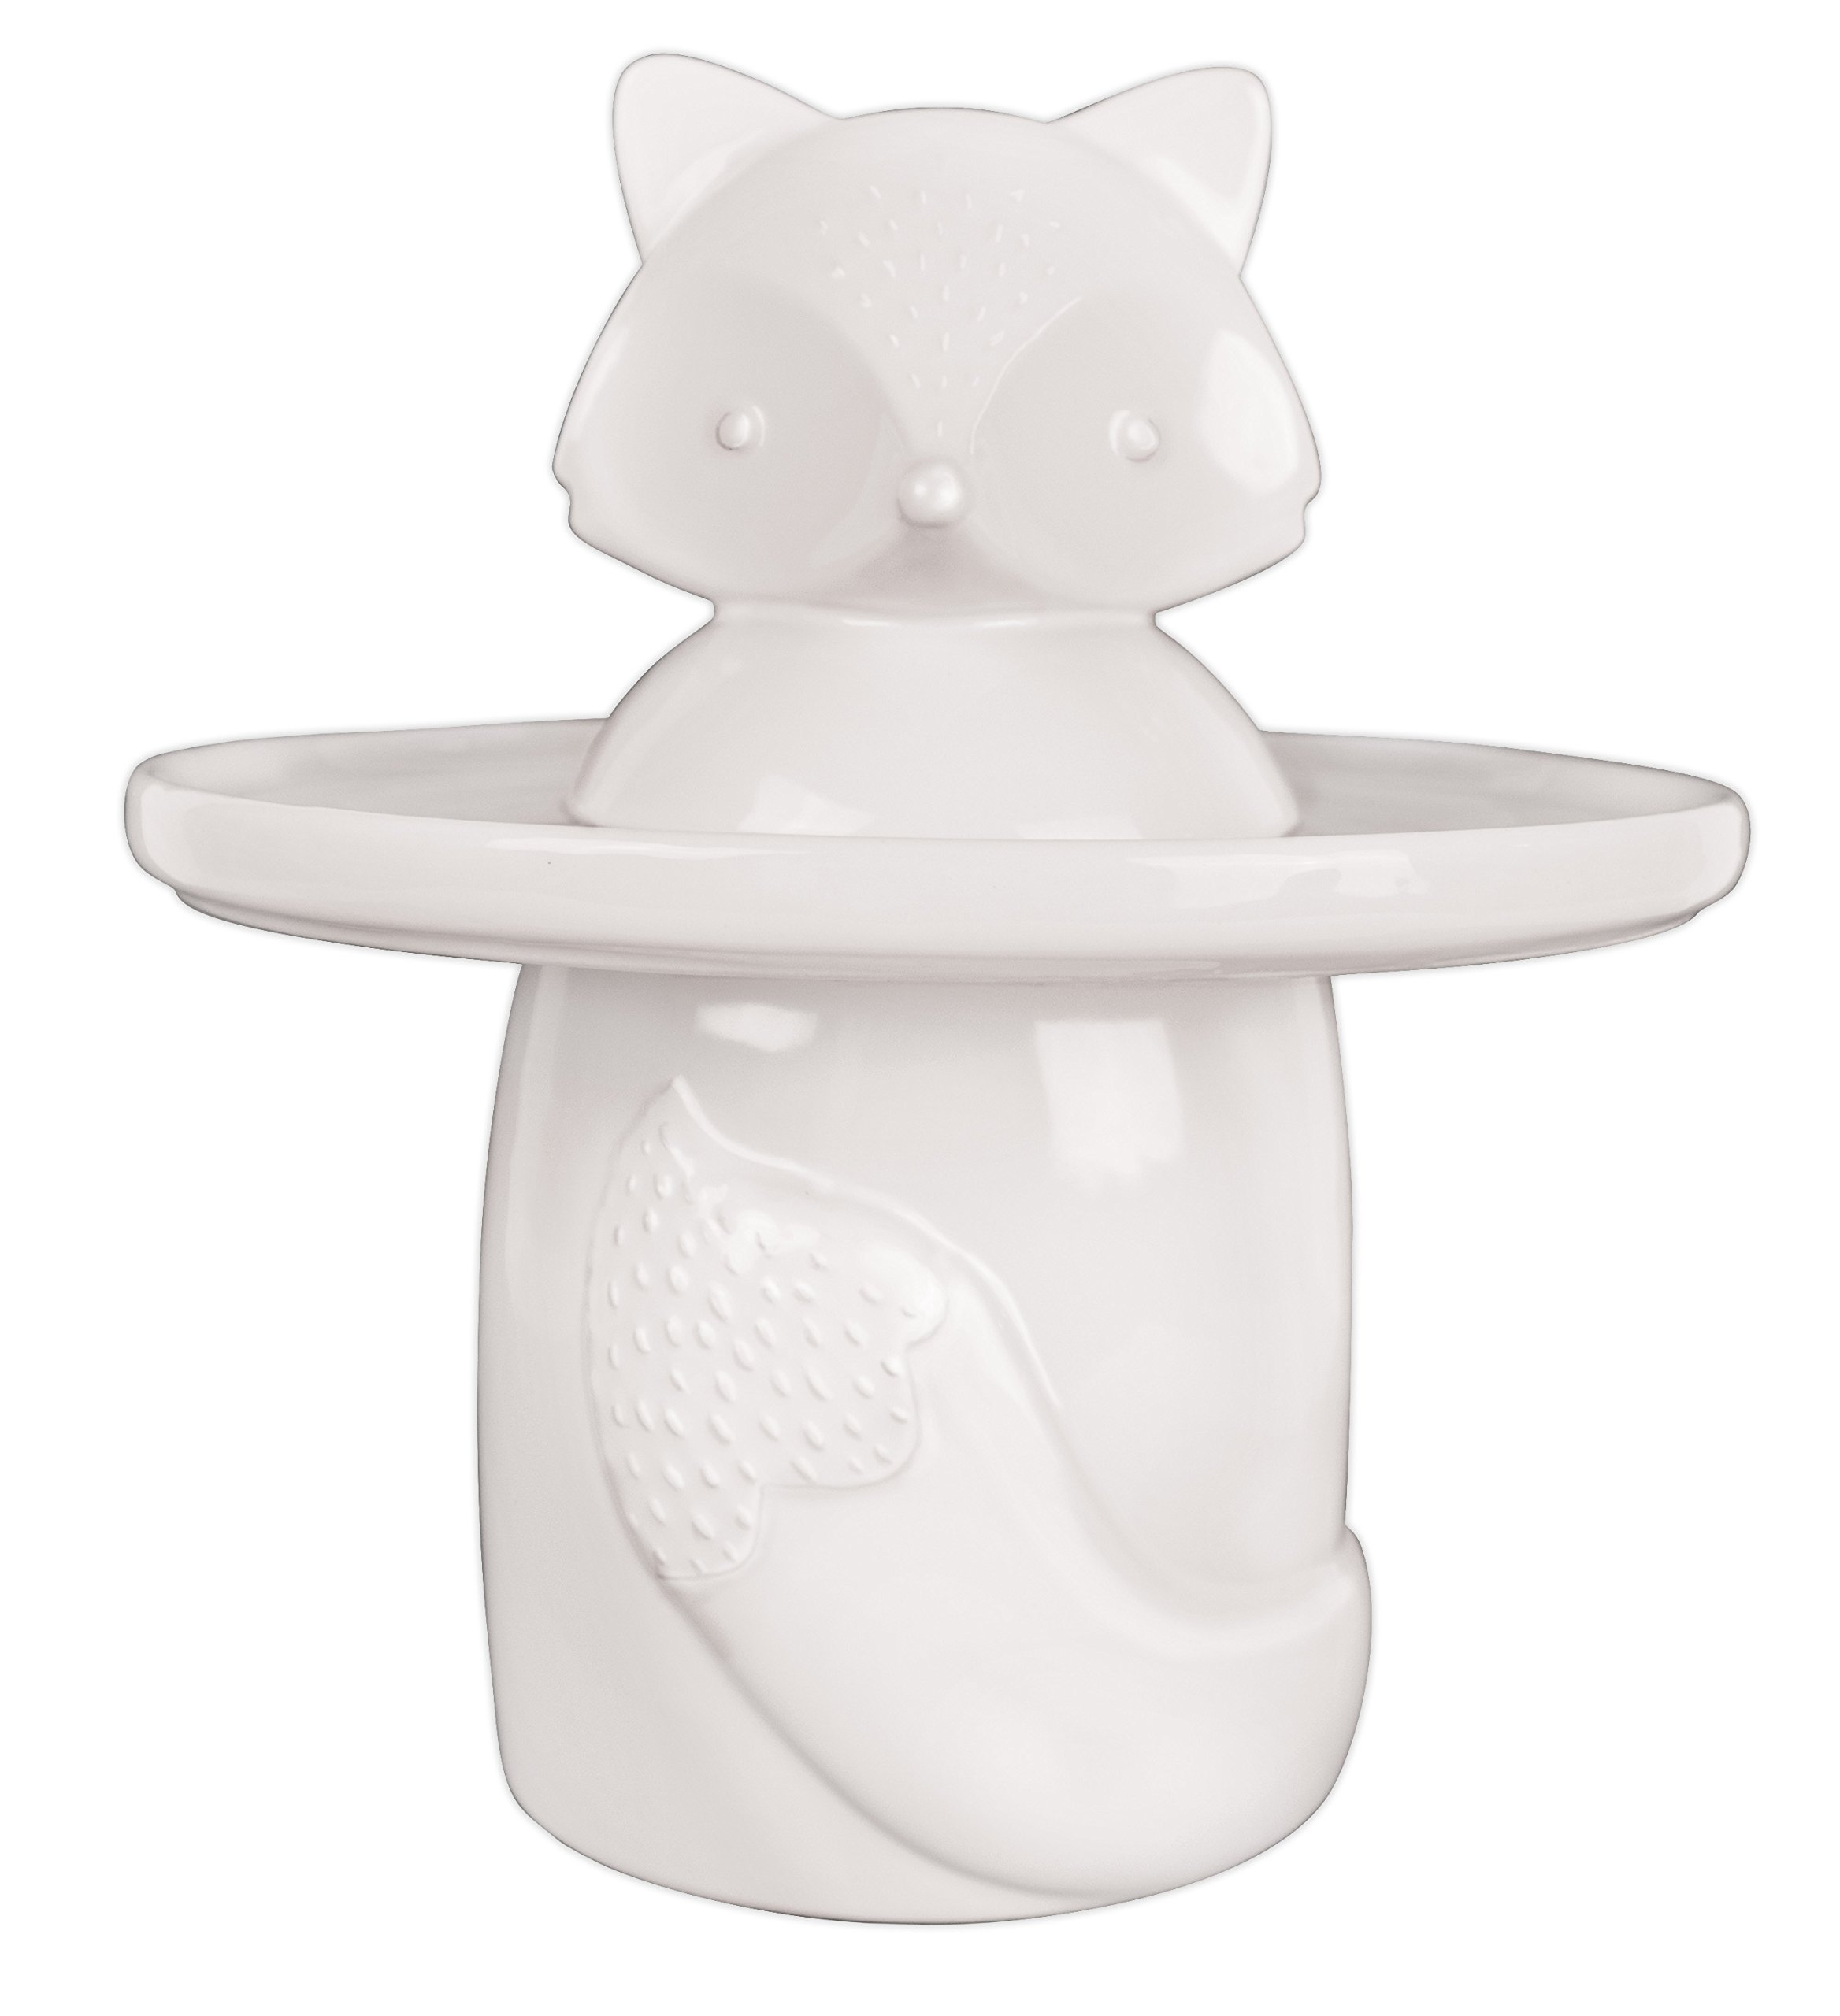 Talisman Designs 6055 Fox Party Animal Ceramic Treat Jar and Serving Tray, White